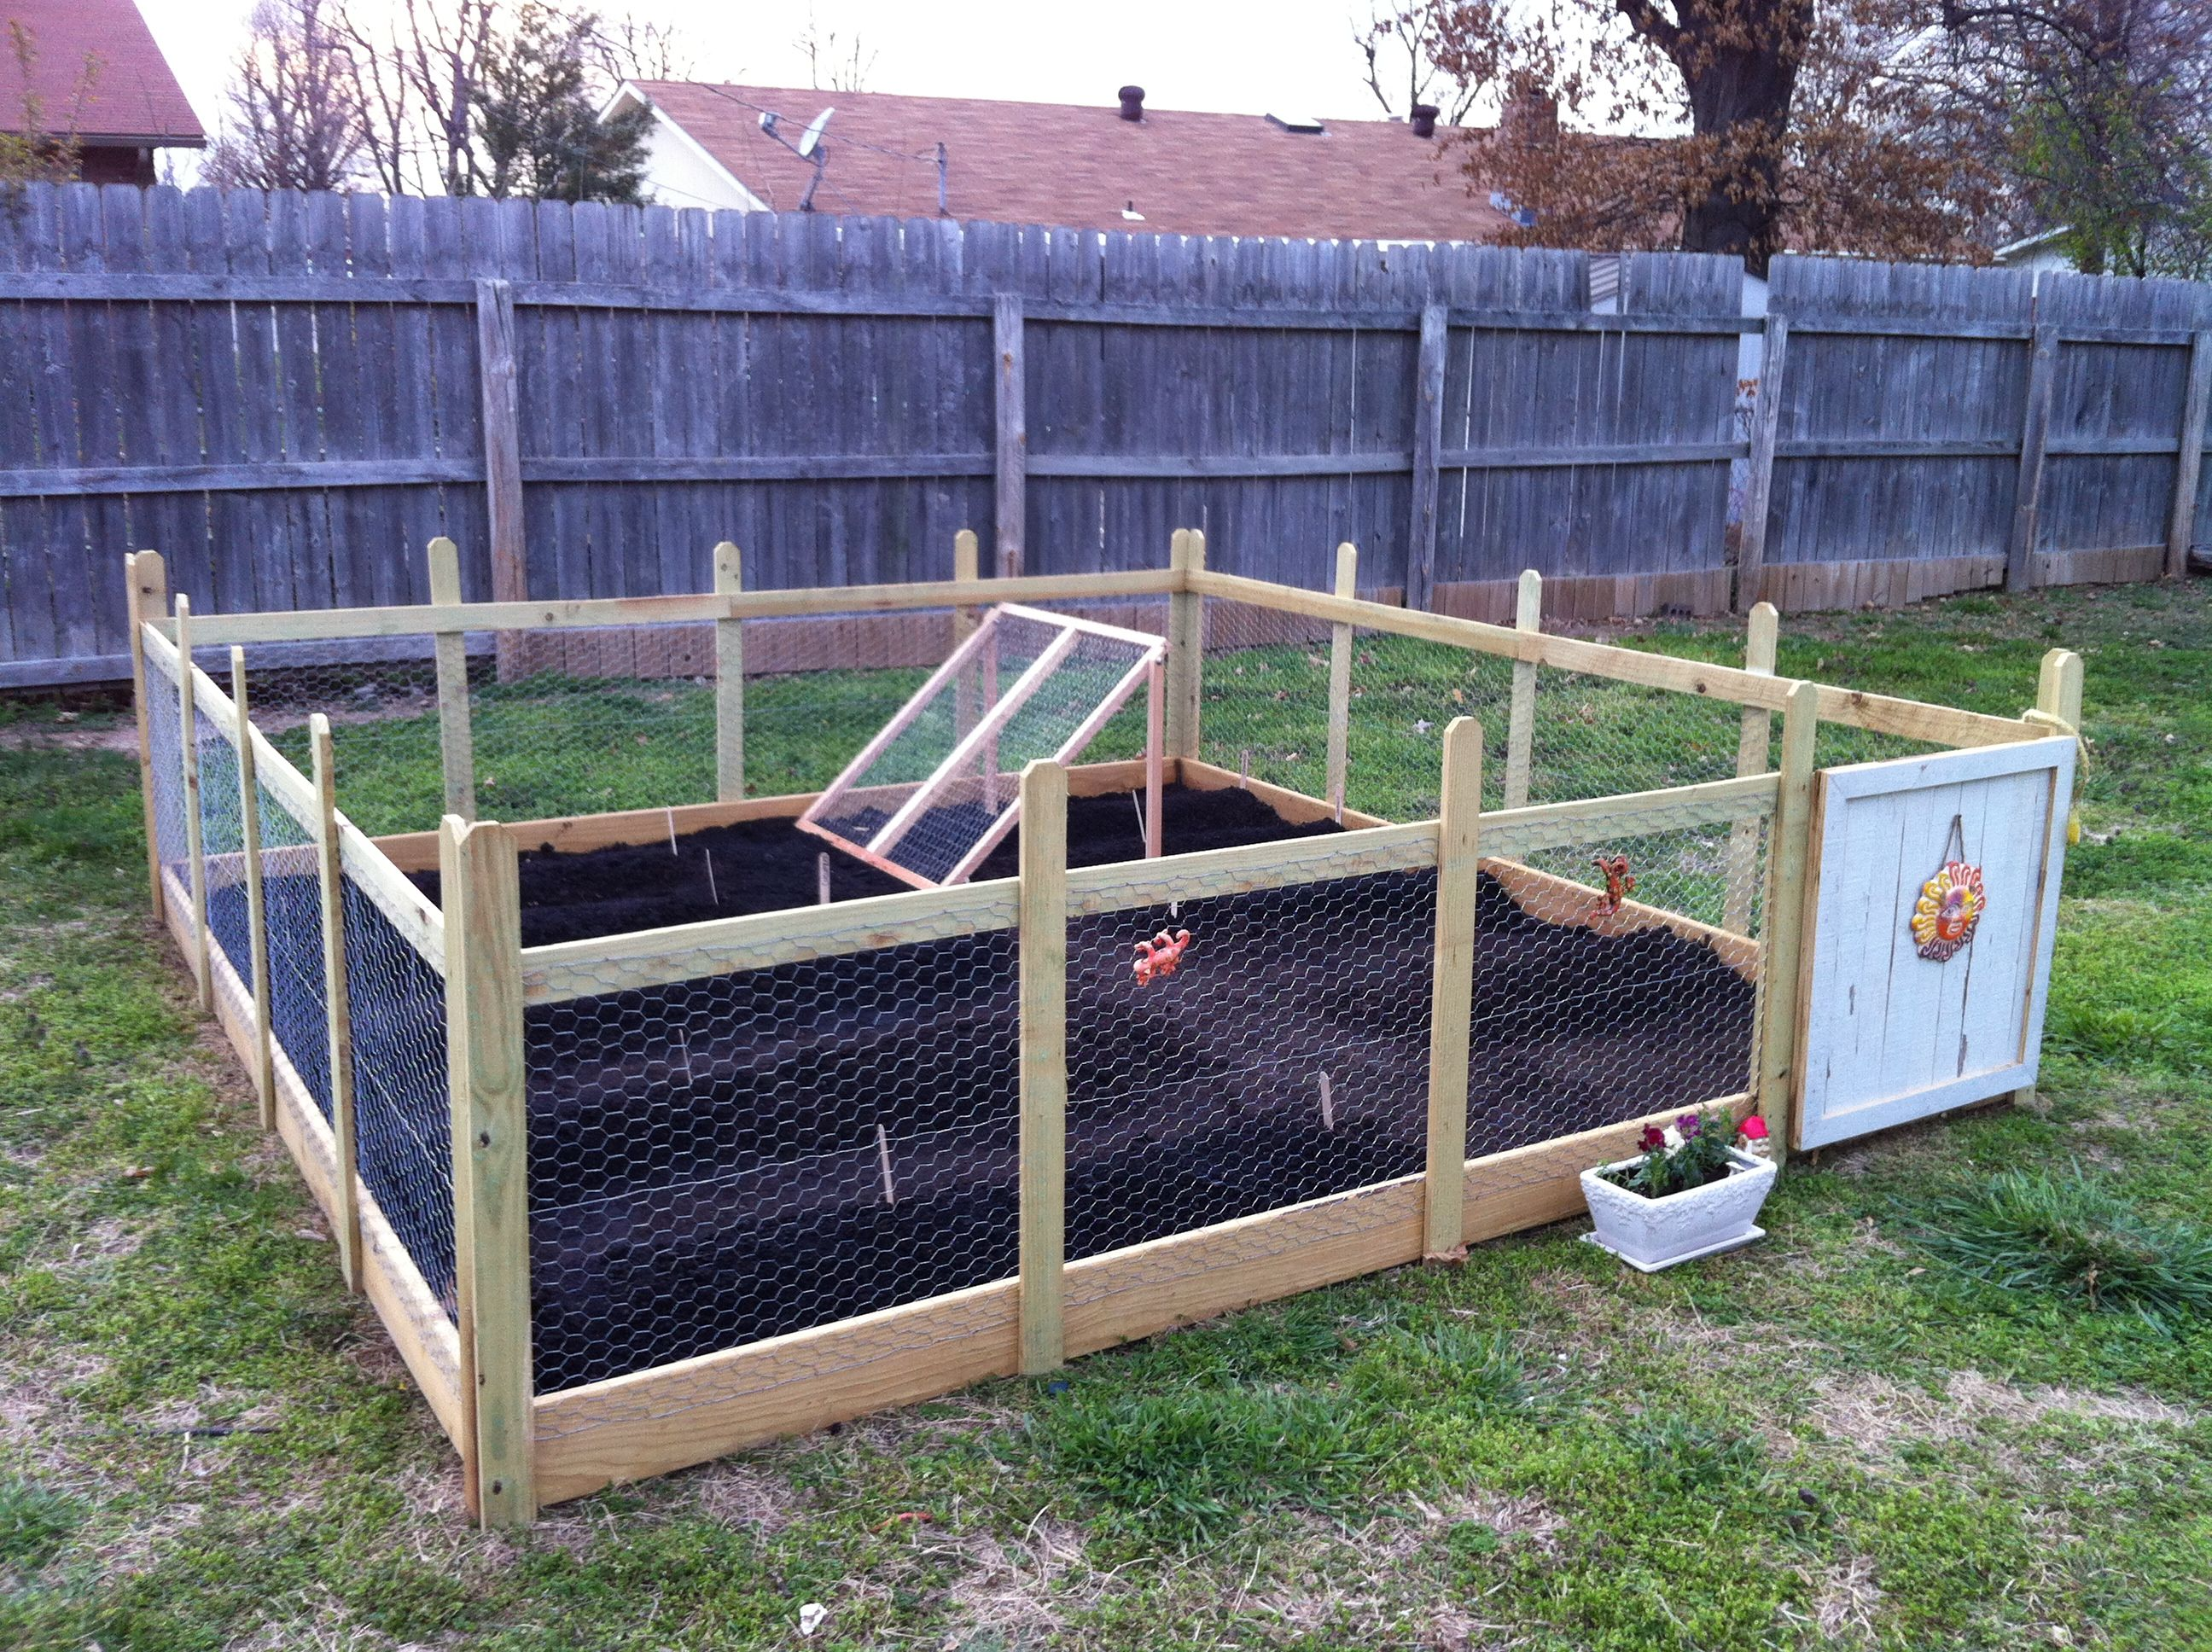 10x10 foot garden four 1x6x10 boards for the base ripped down fence pickets strung - Garden Ideas To Keep Animals Out